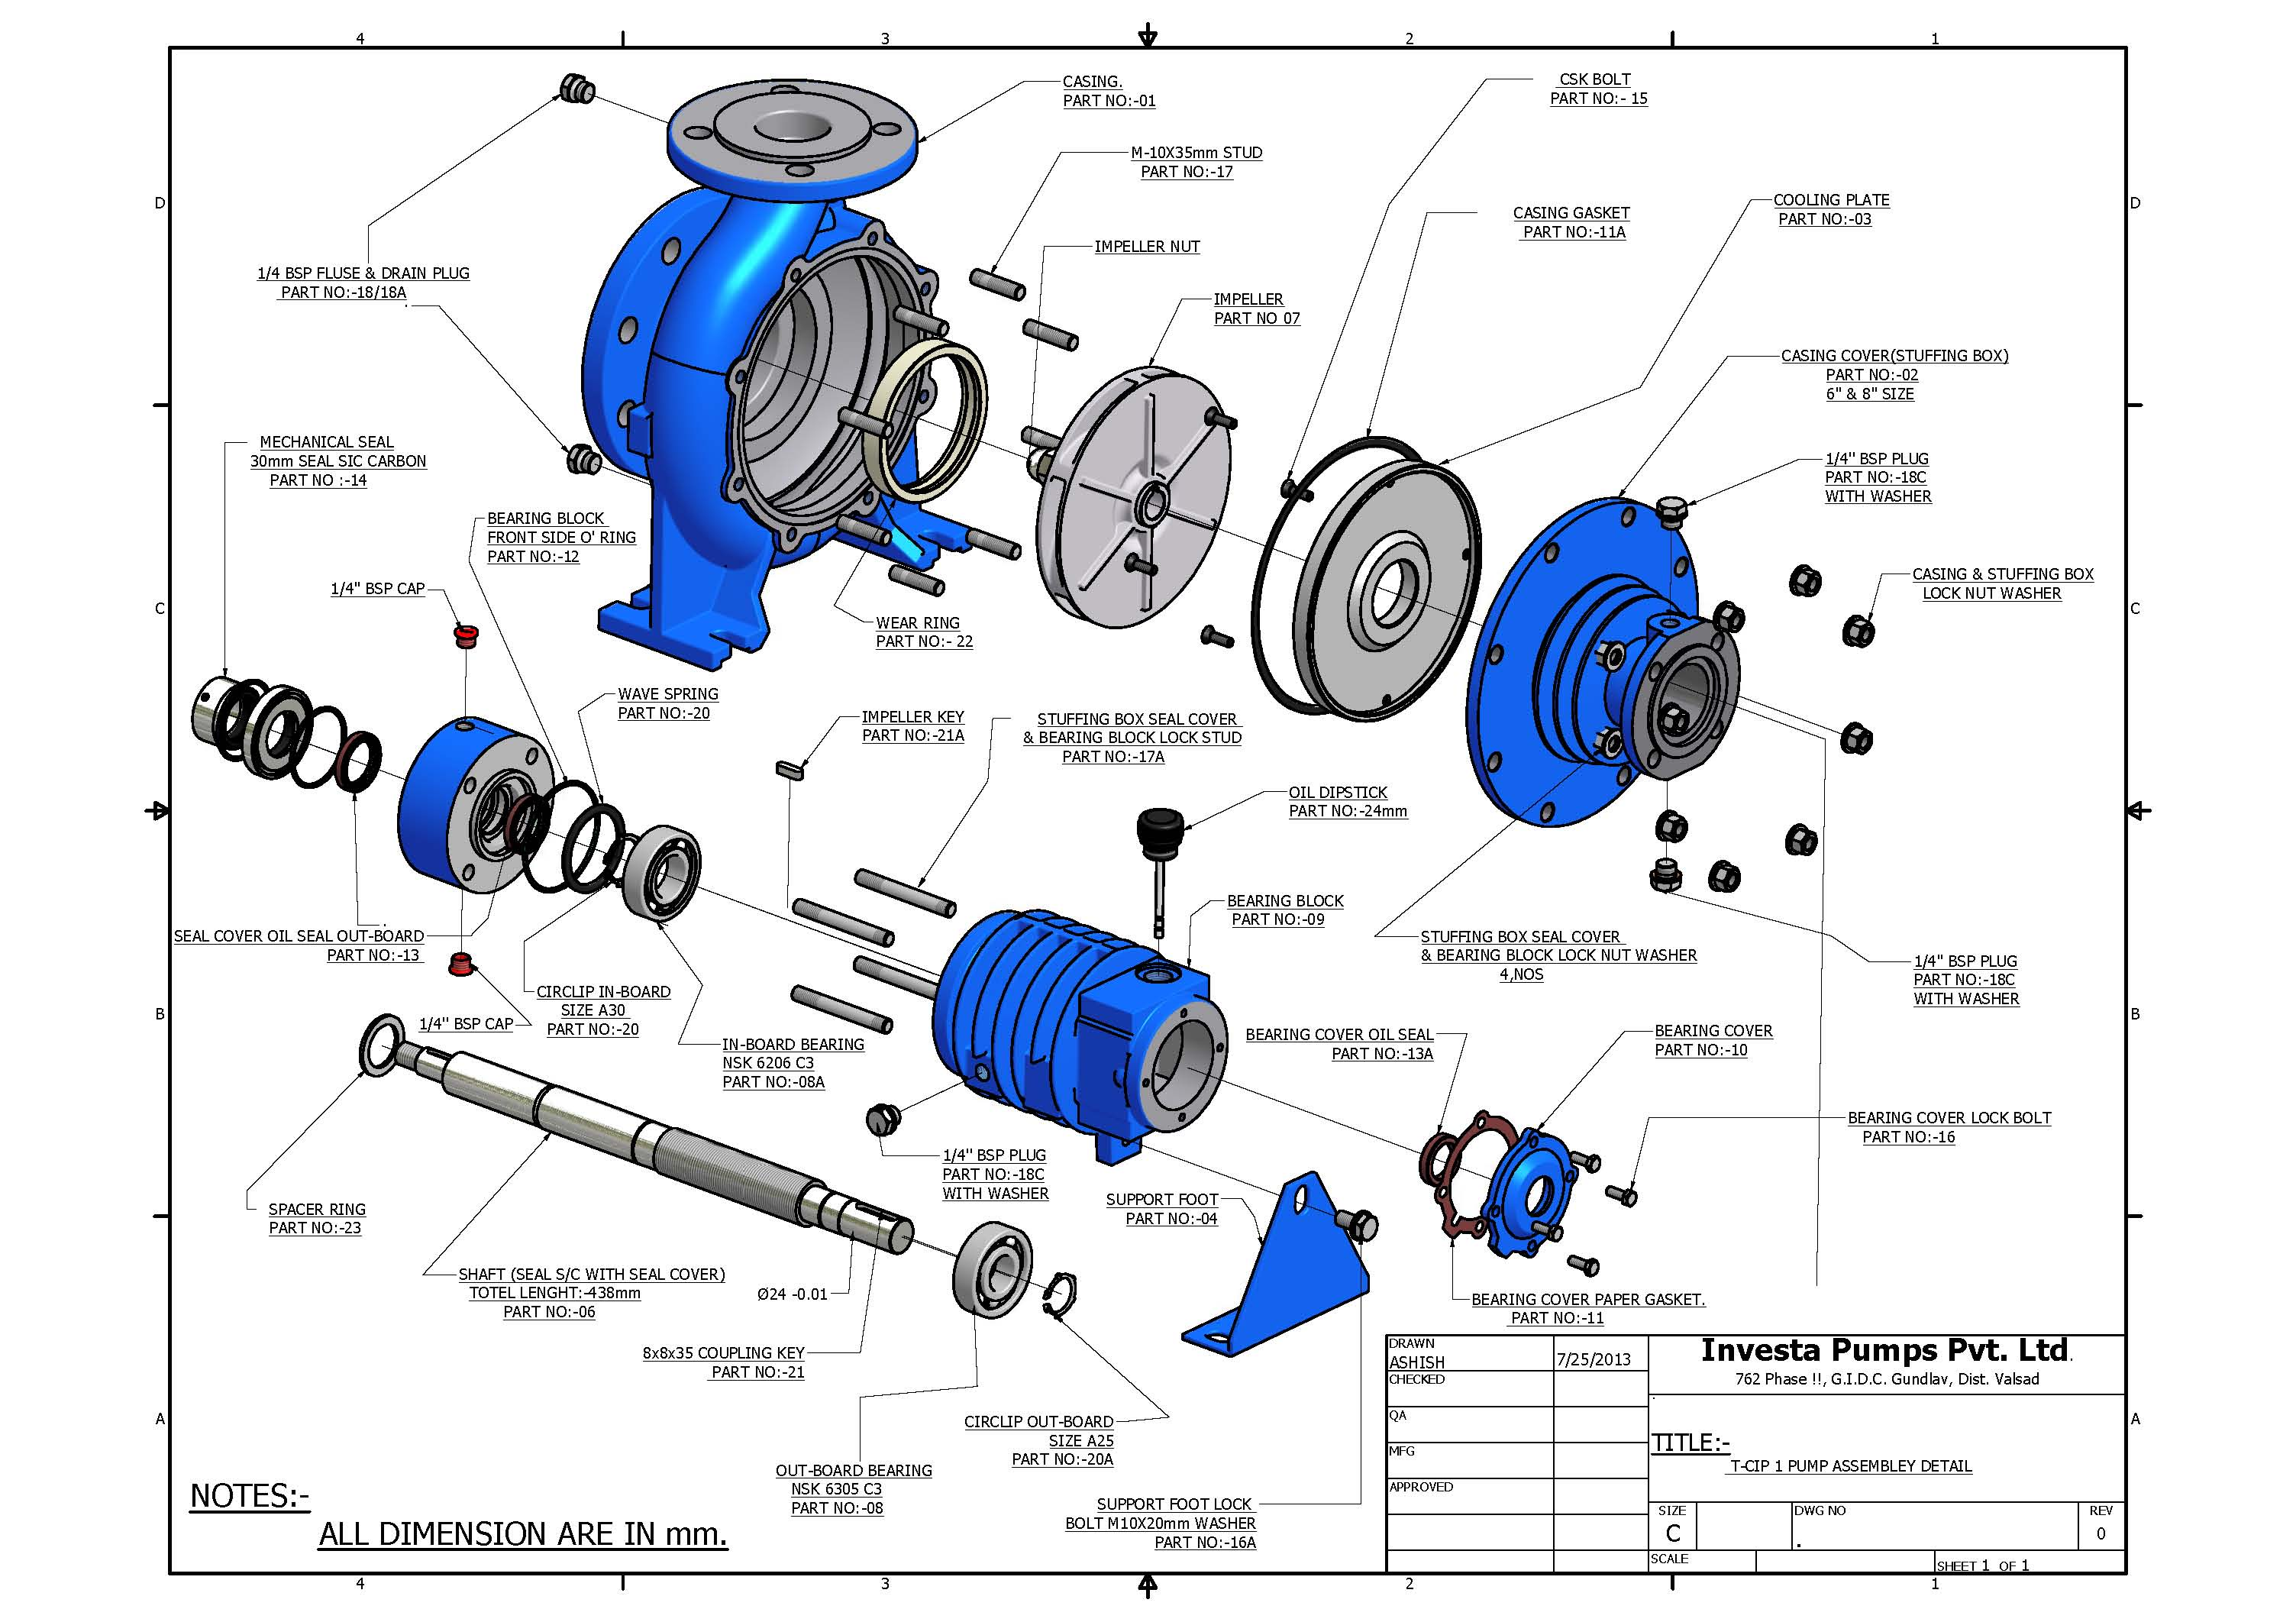 Thermic Flluid Pump Exploded view